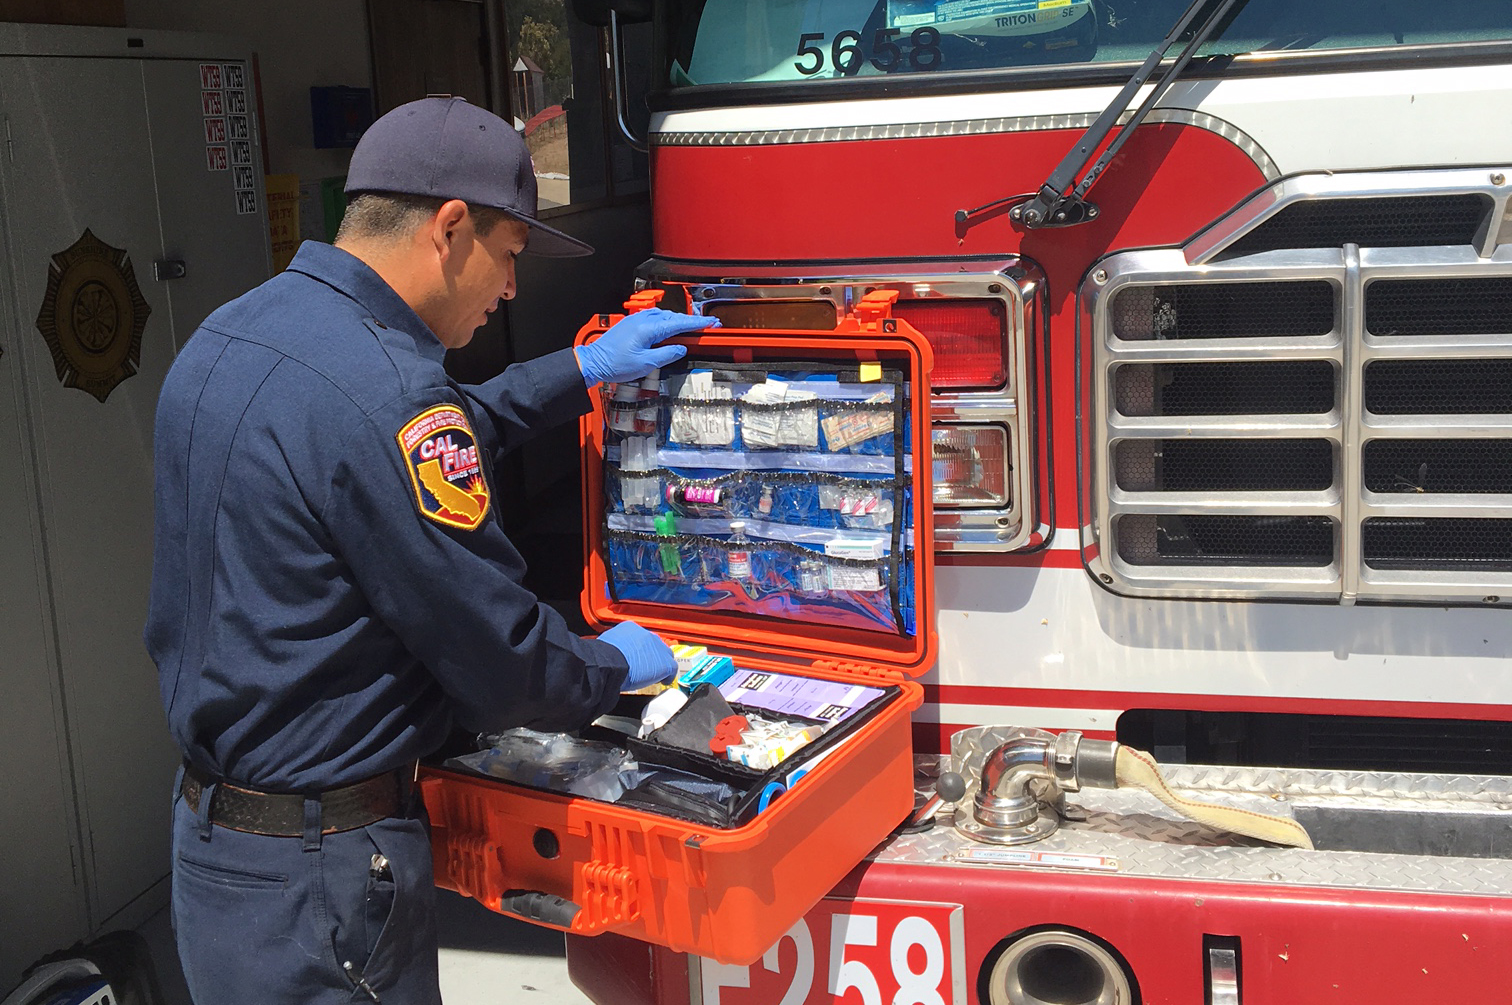 Firefighter Paramedic Ruben Vazquez of the Sunshine Summit County Fire Station takes inventory of his medications box.